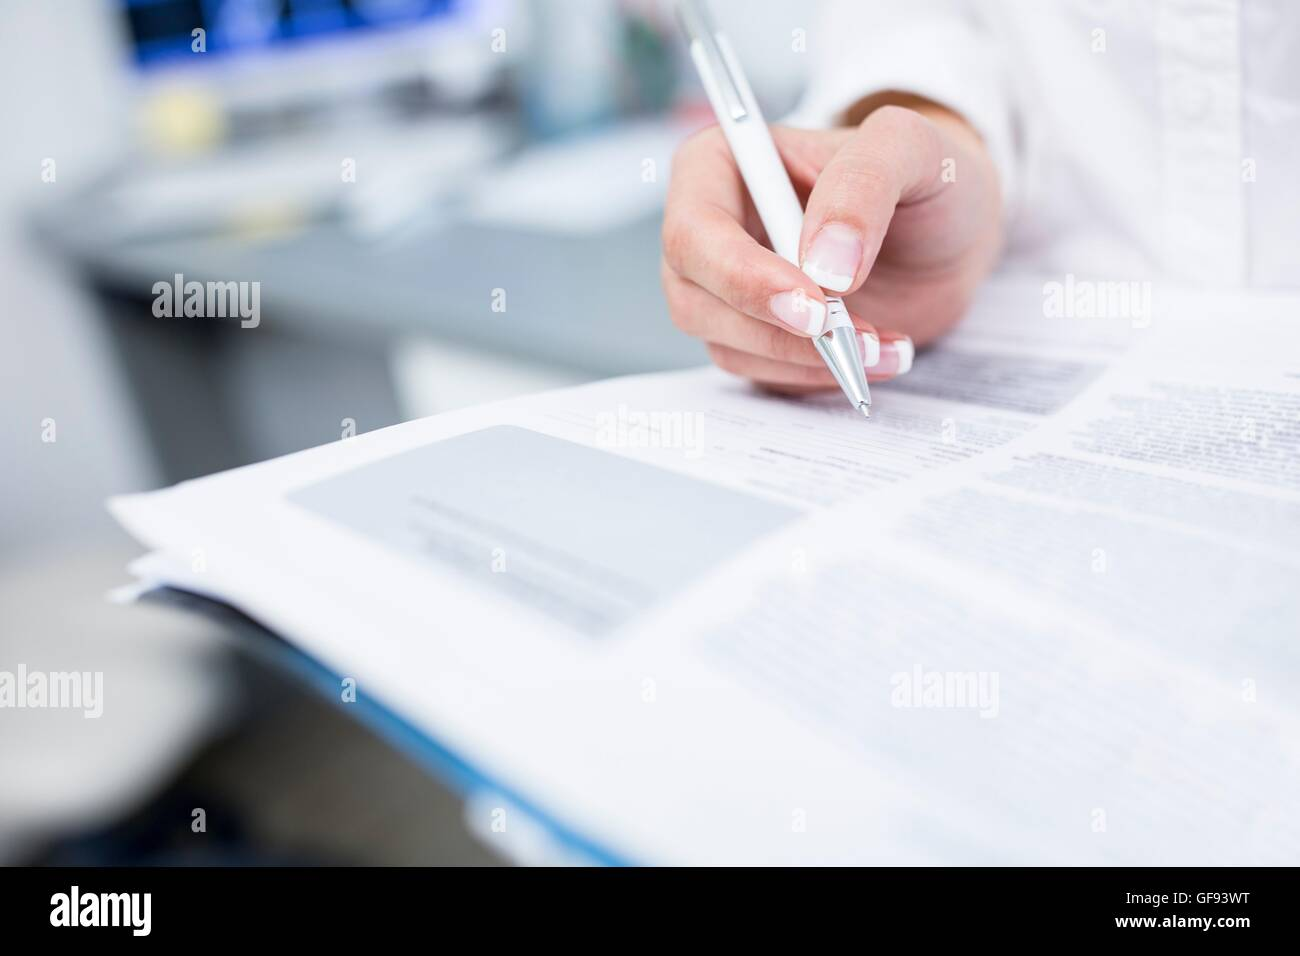 Close-up of dentist's hand writing on file. - Stock Image